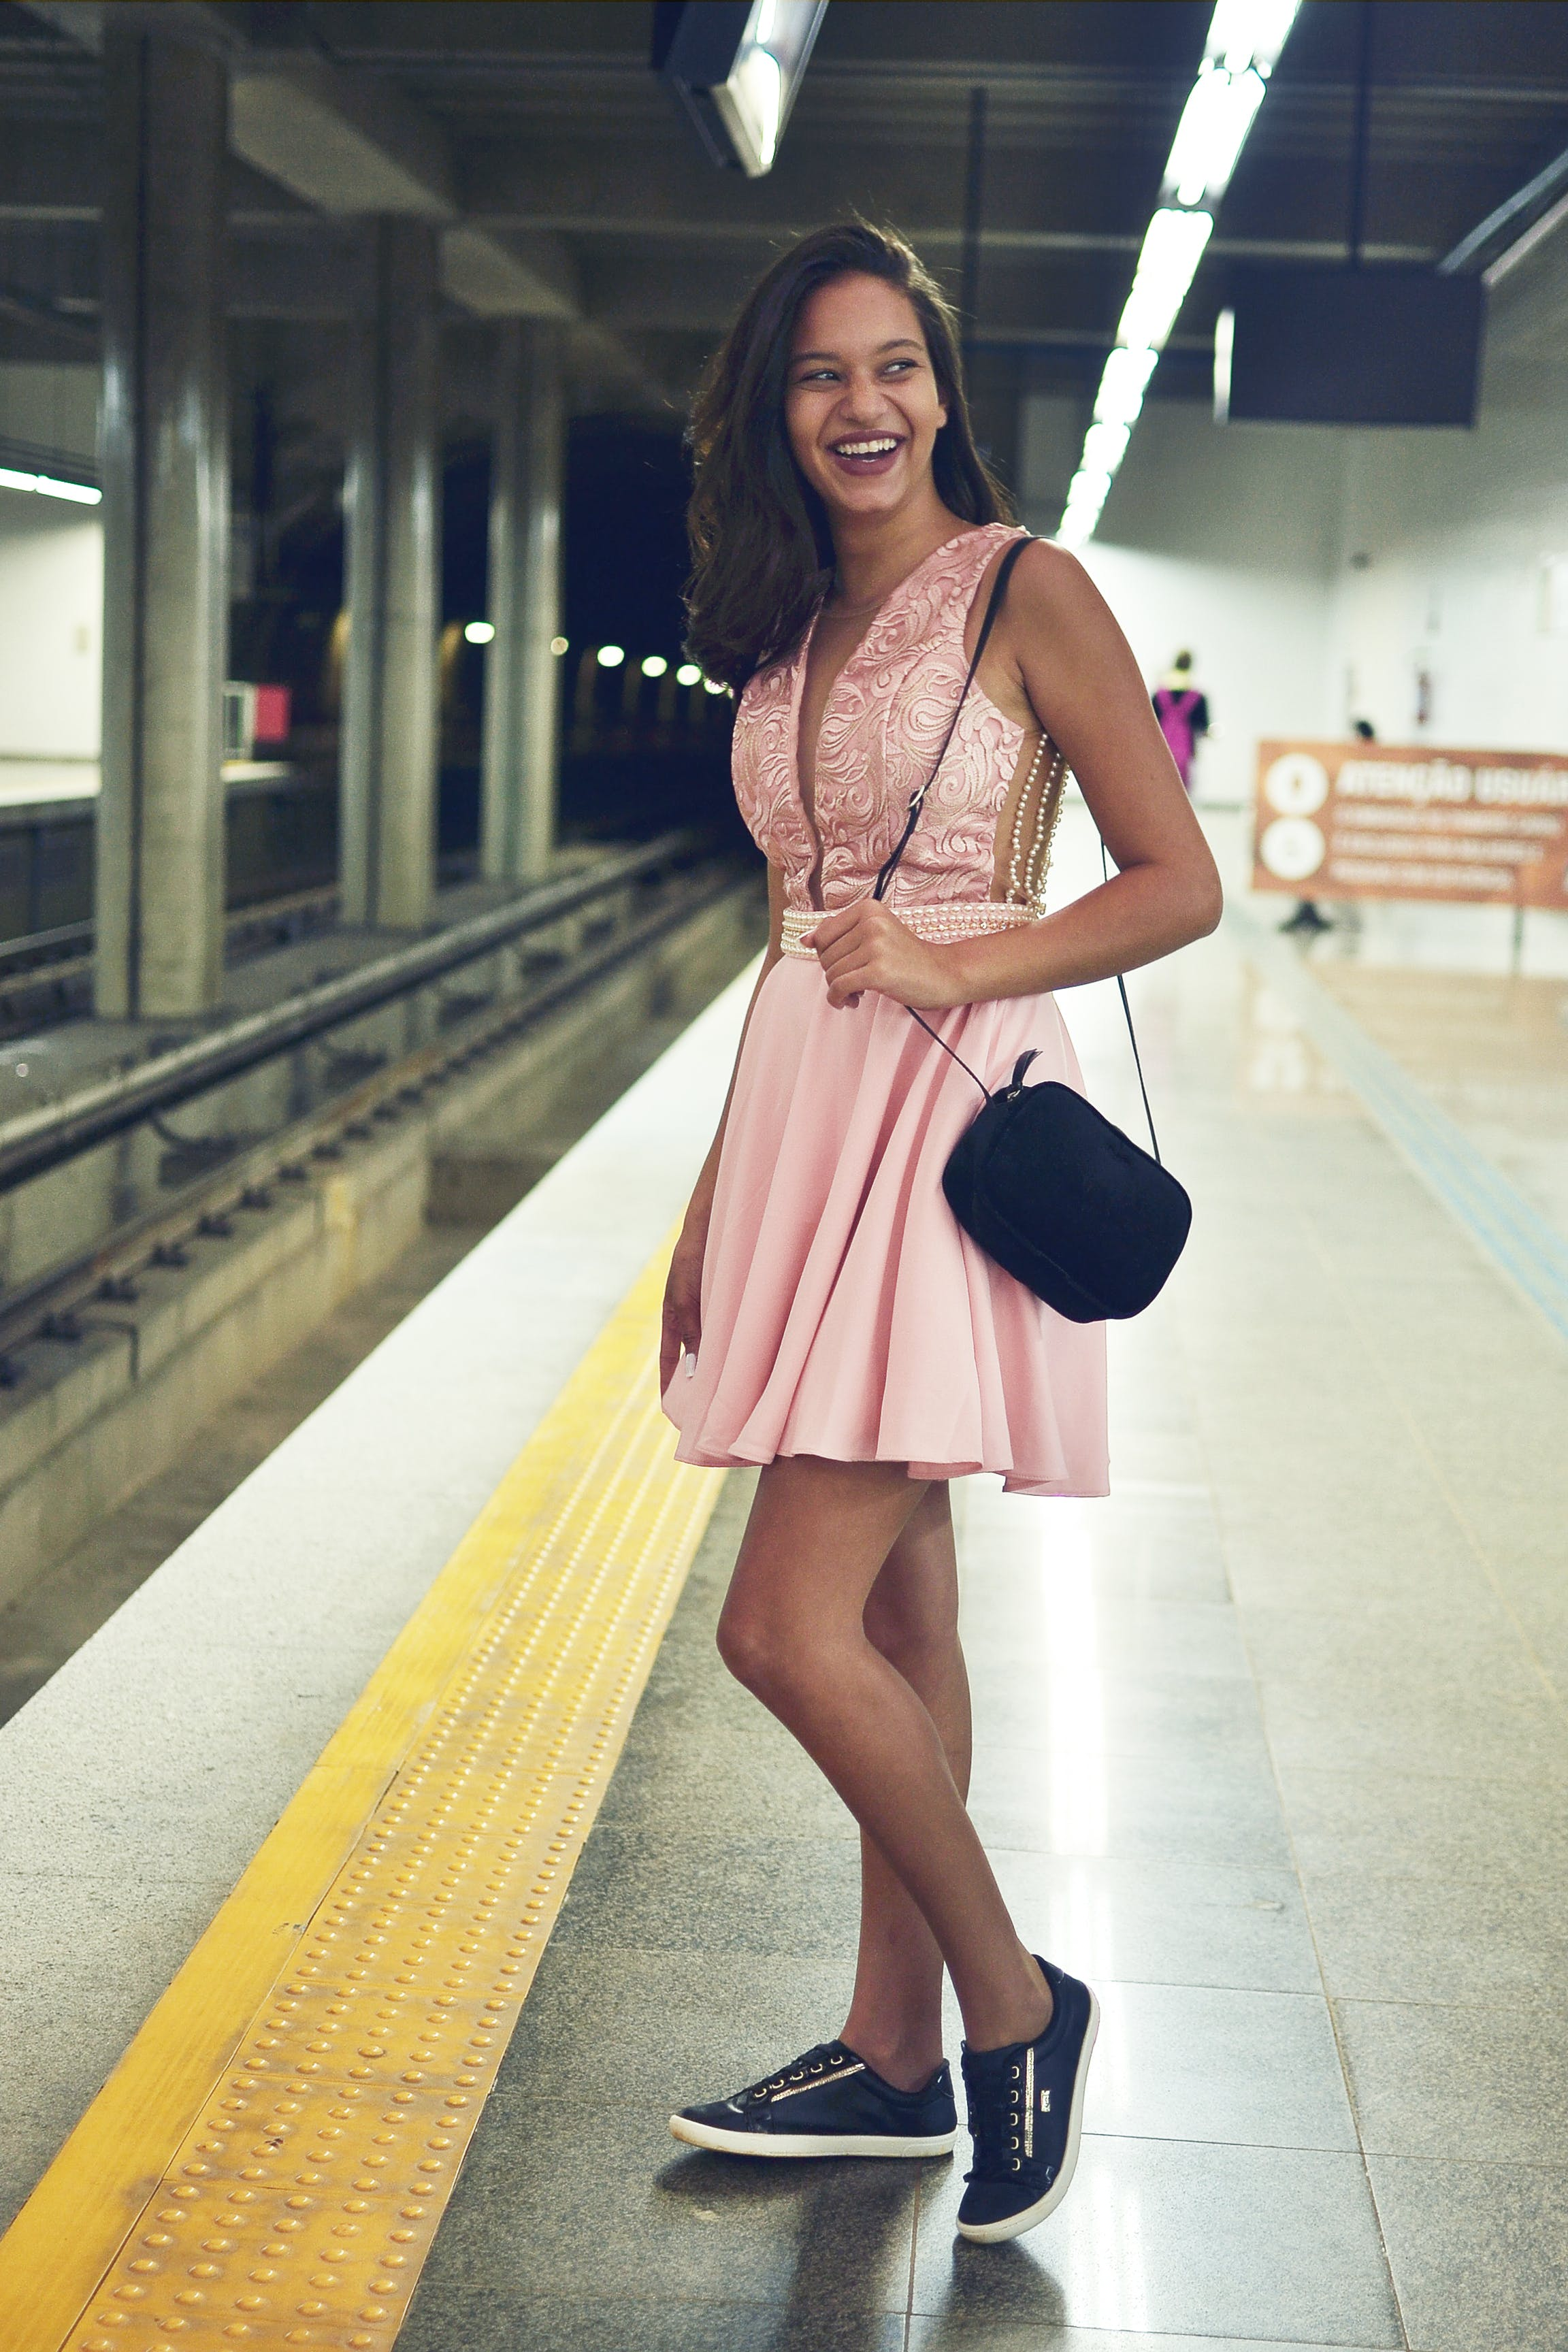 Woman Wearing Pink Plunging Necklace Midi Dress Standing on Train Station